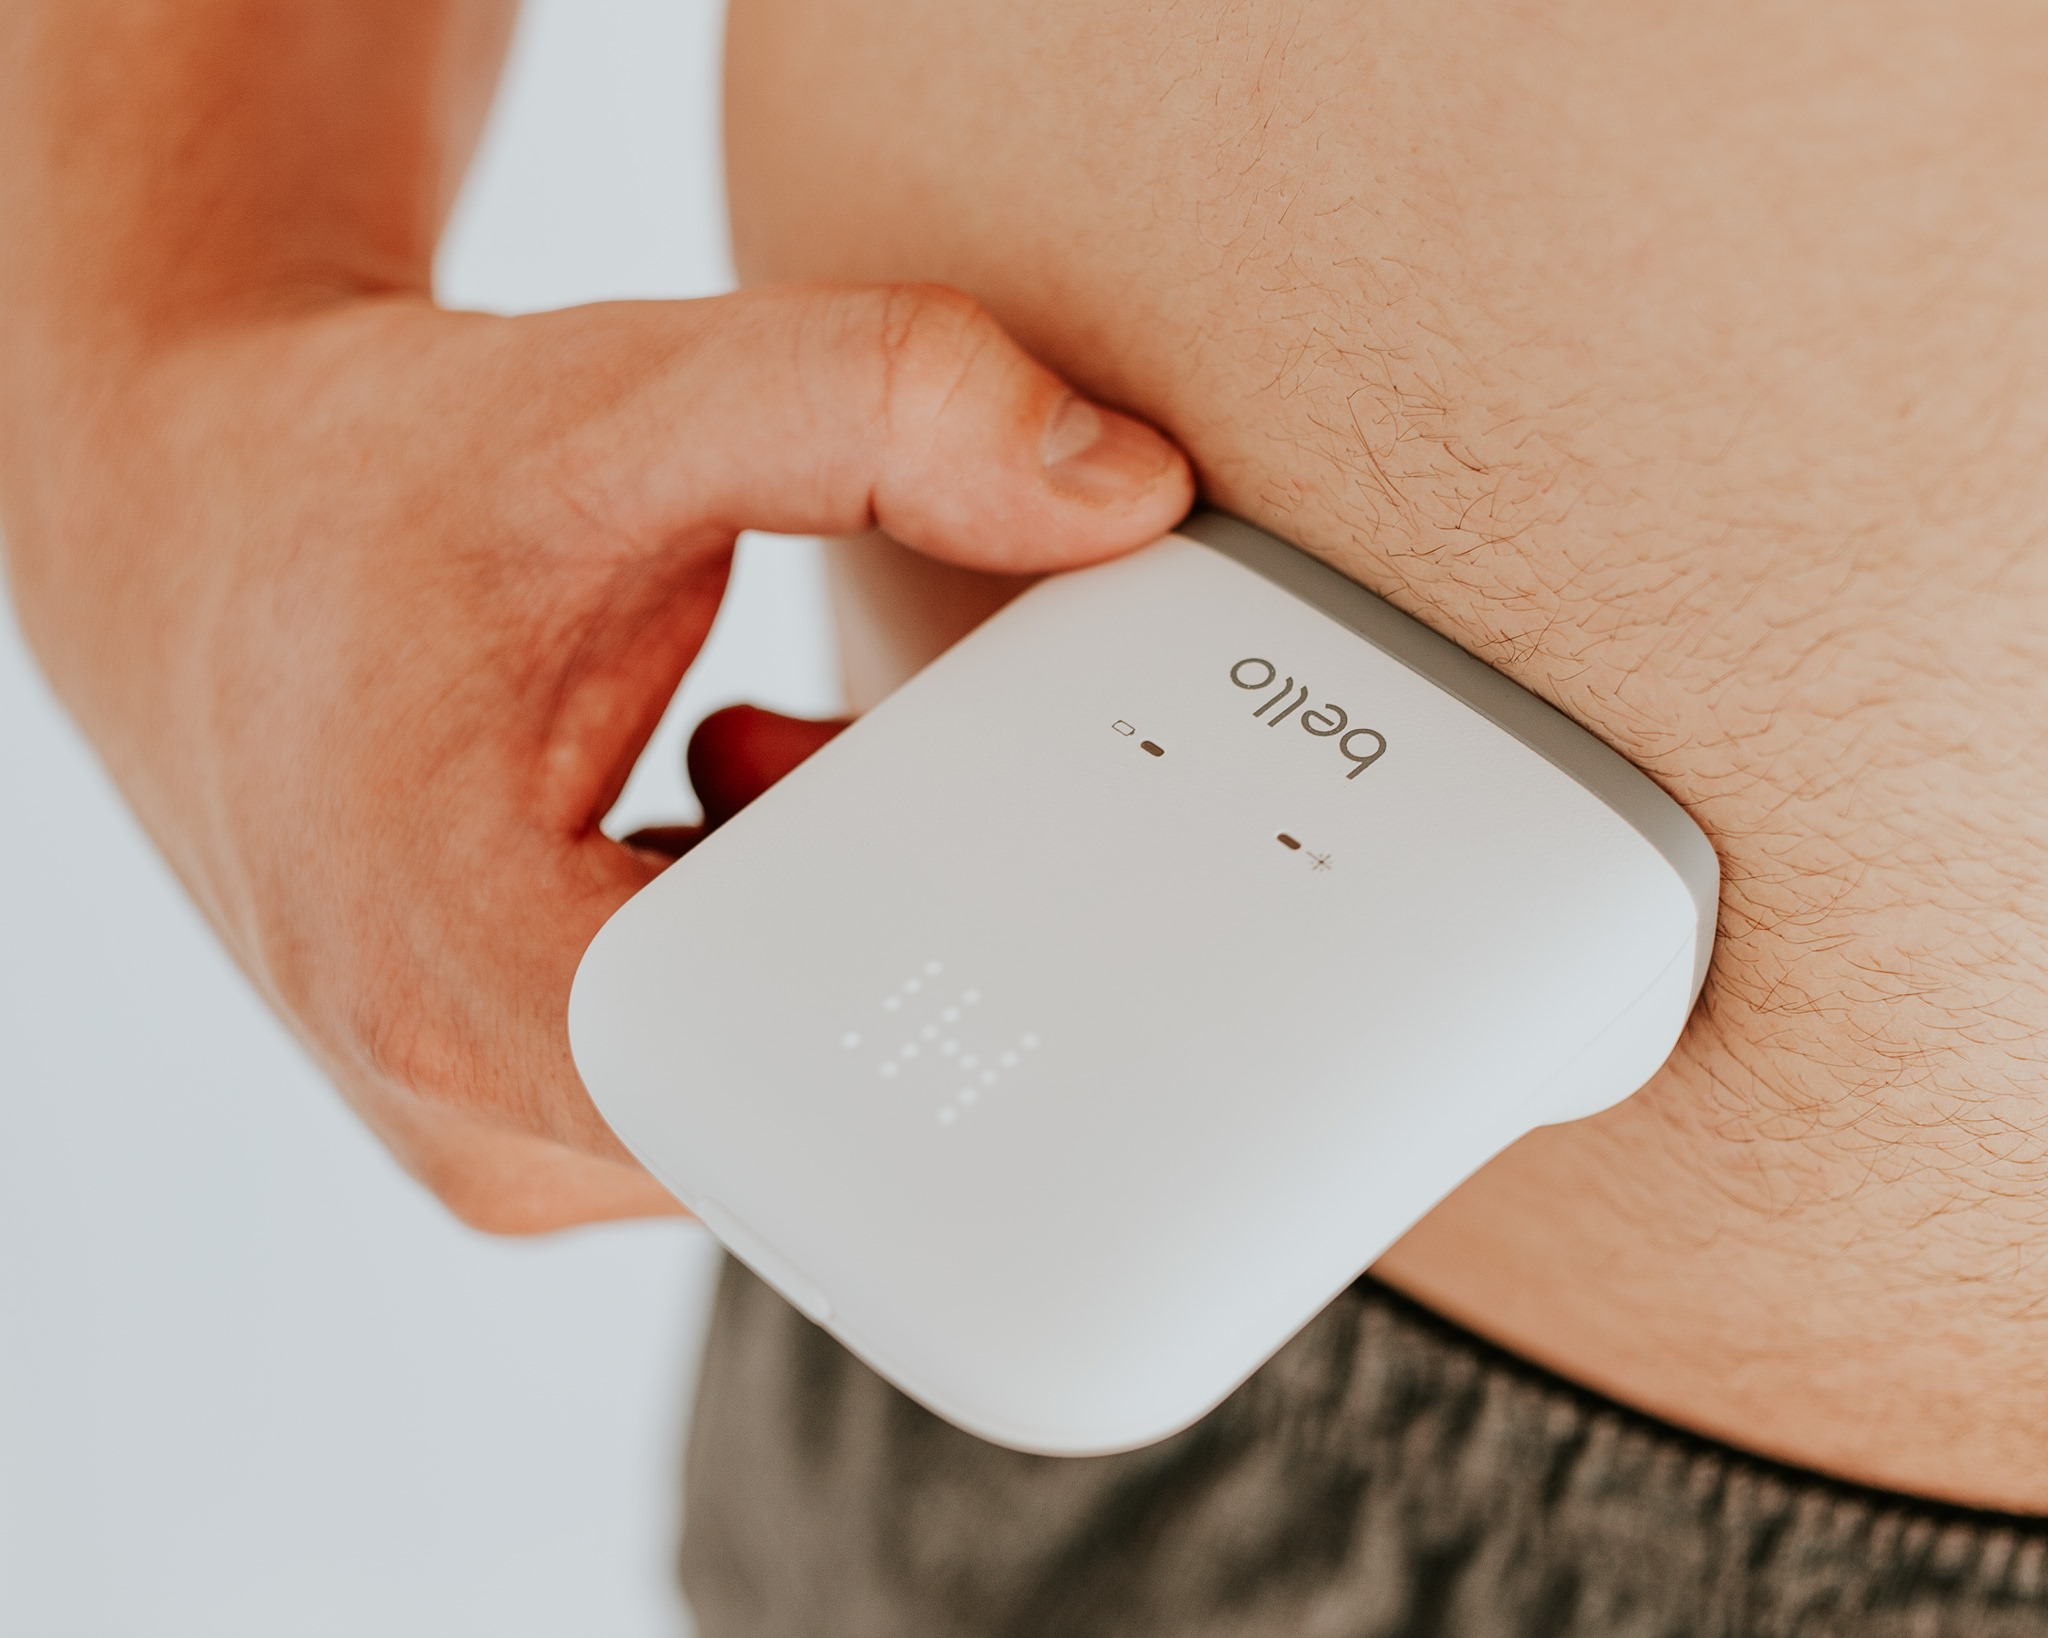 Fat-measurement device sends pulses of light into users' bellies